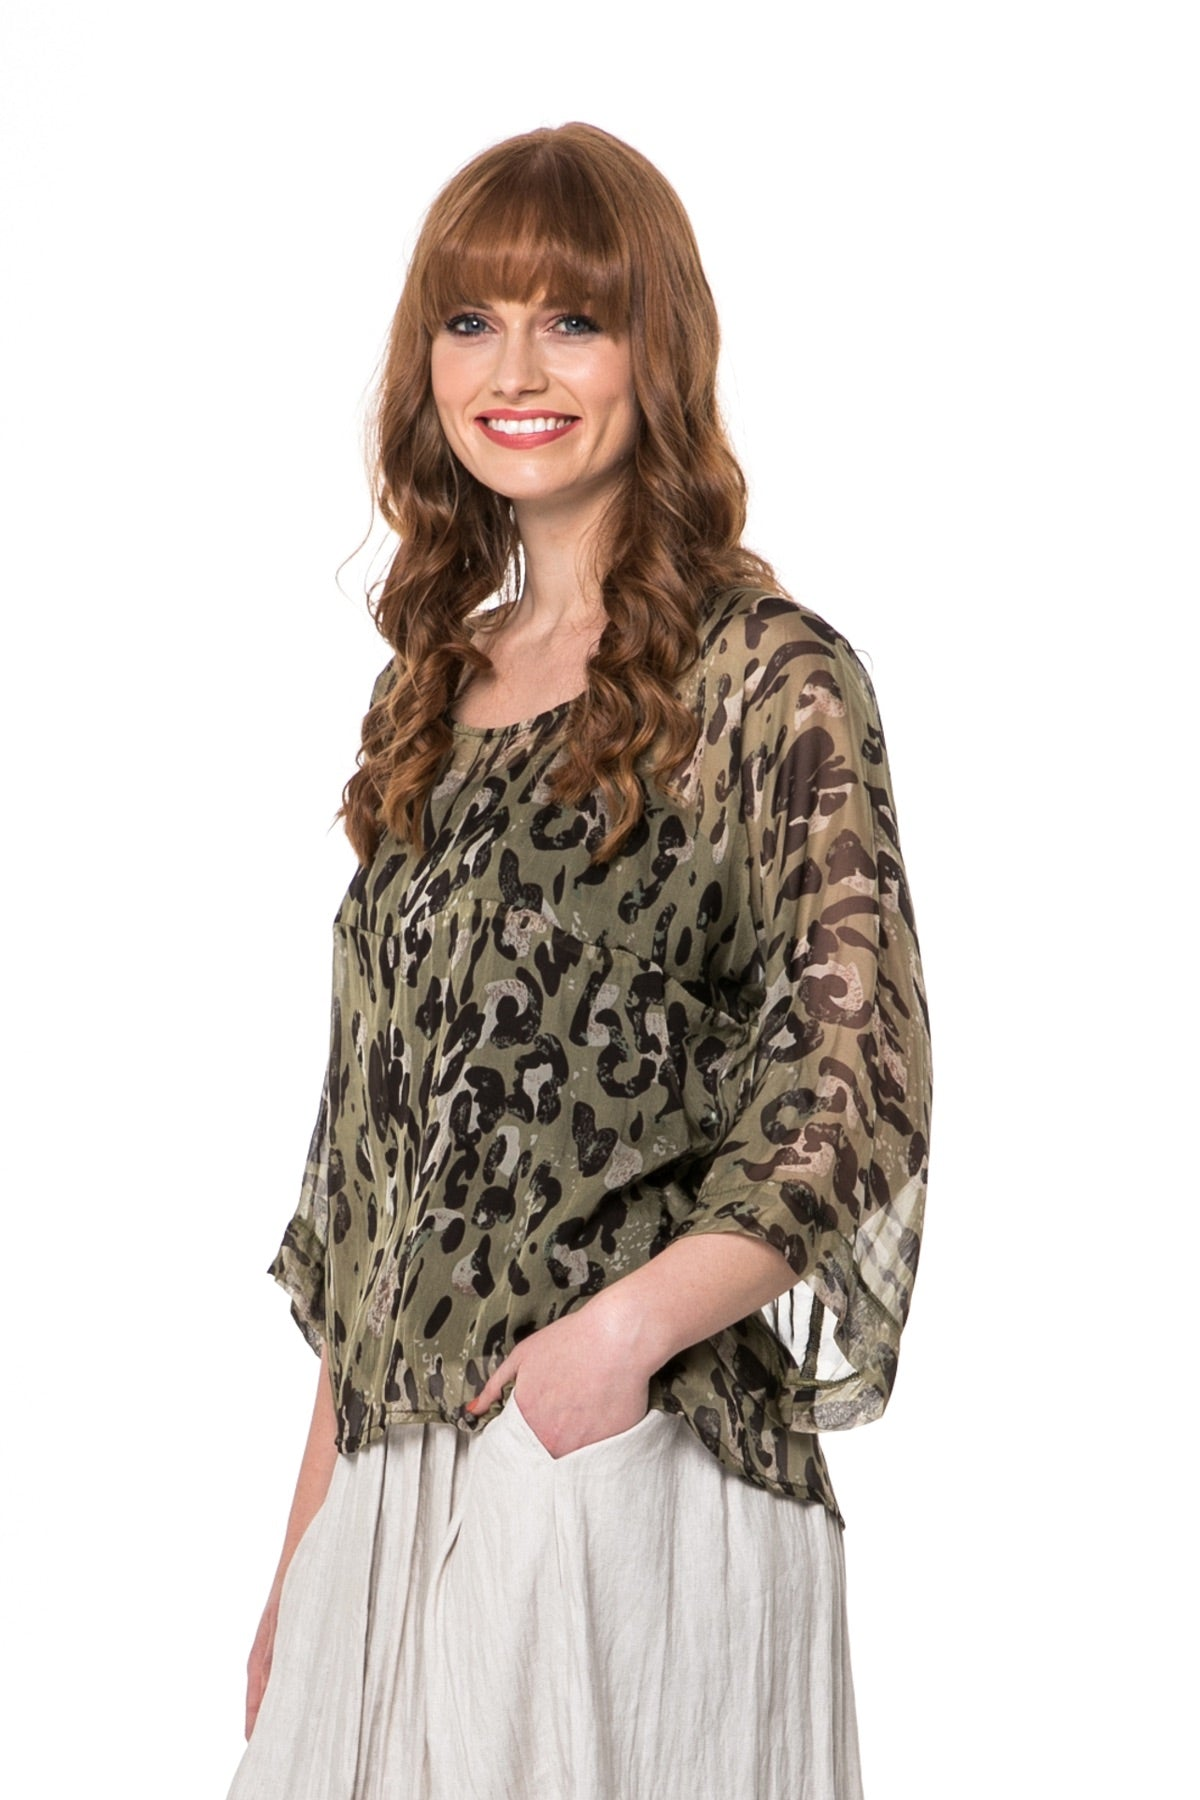 Juna Silk Tuesday Top - Feline